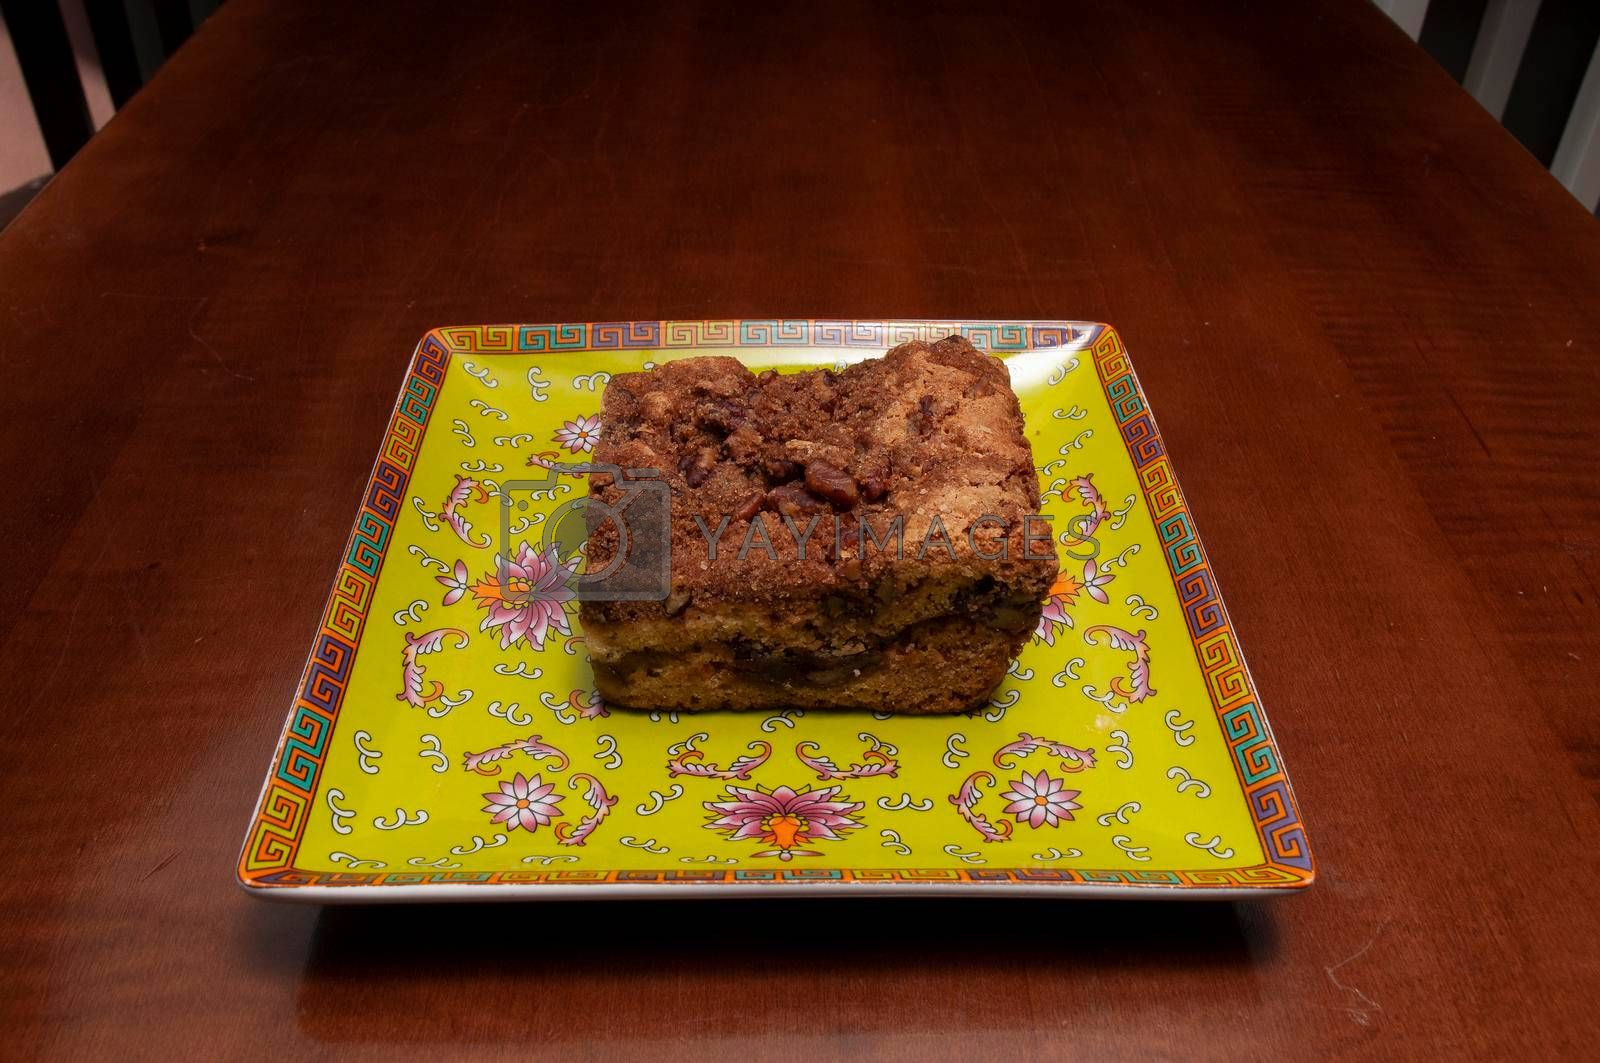 Delicious baked good known as the coffee cake